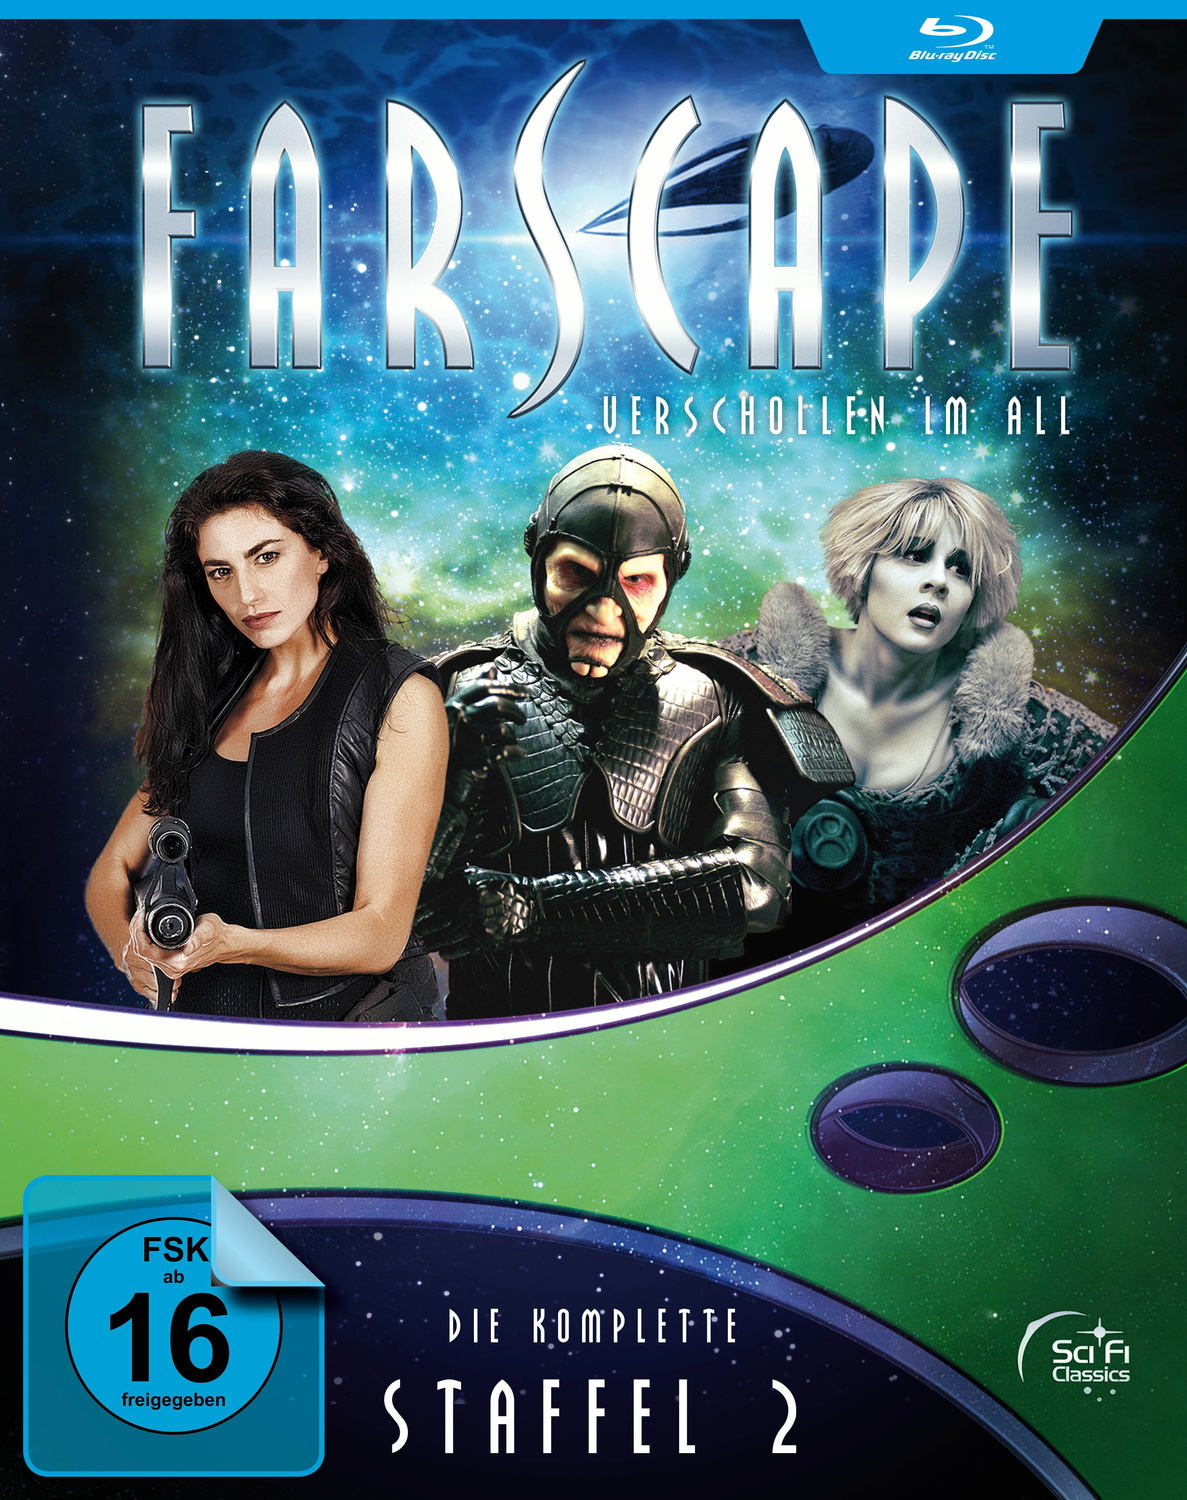 Farscape - Verschollen im All - Staffel 2